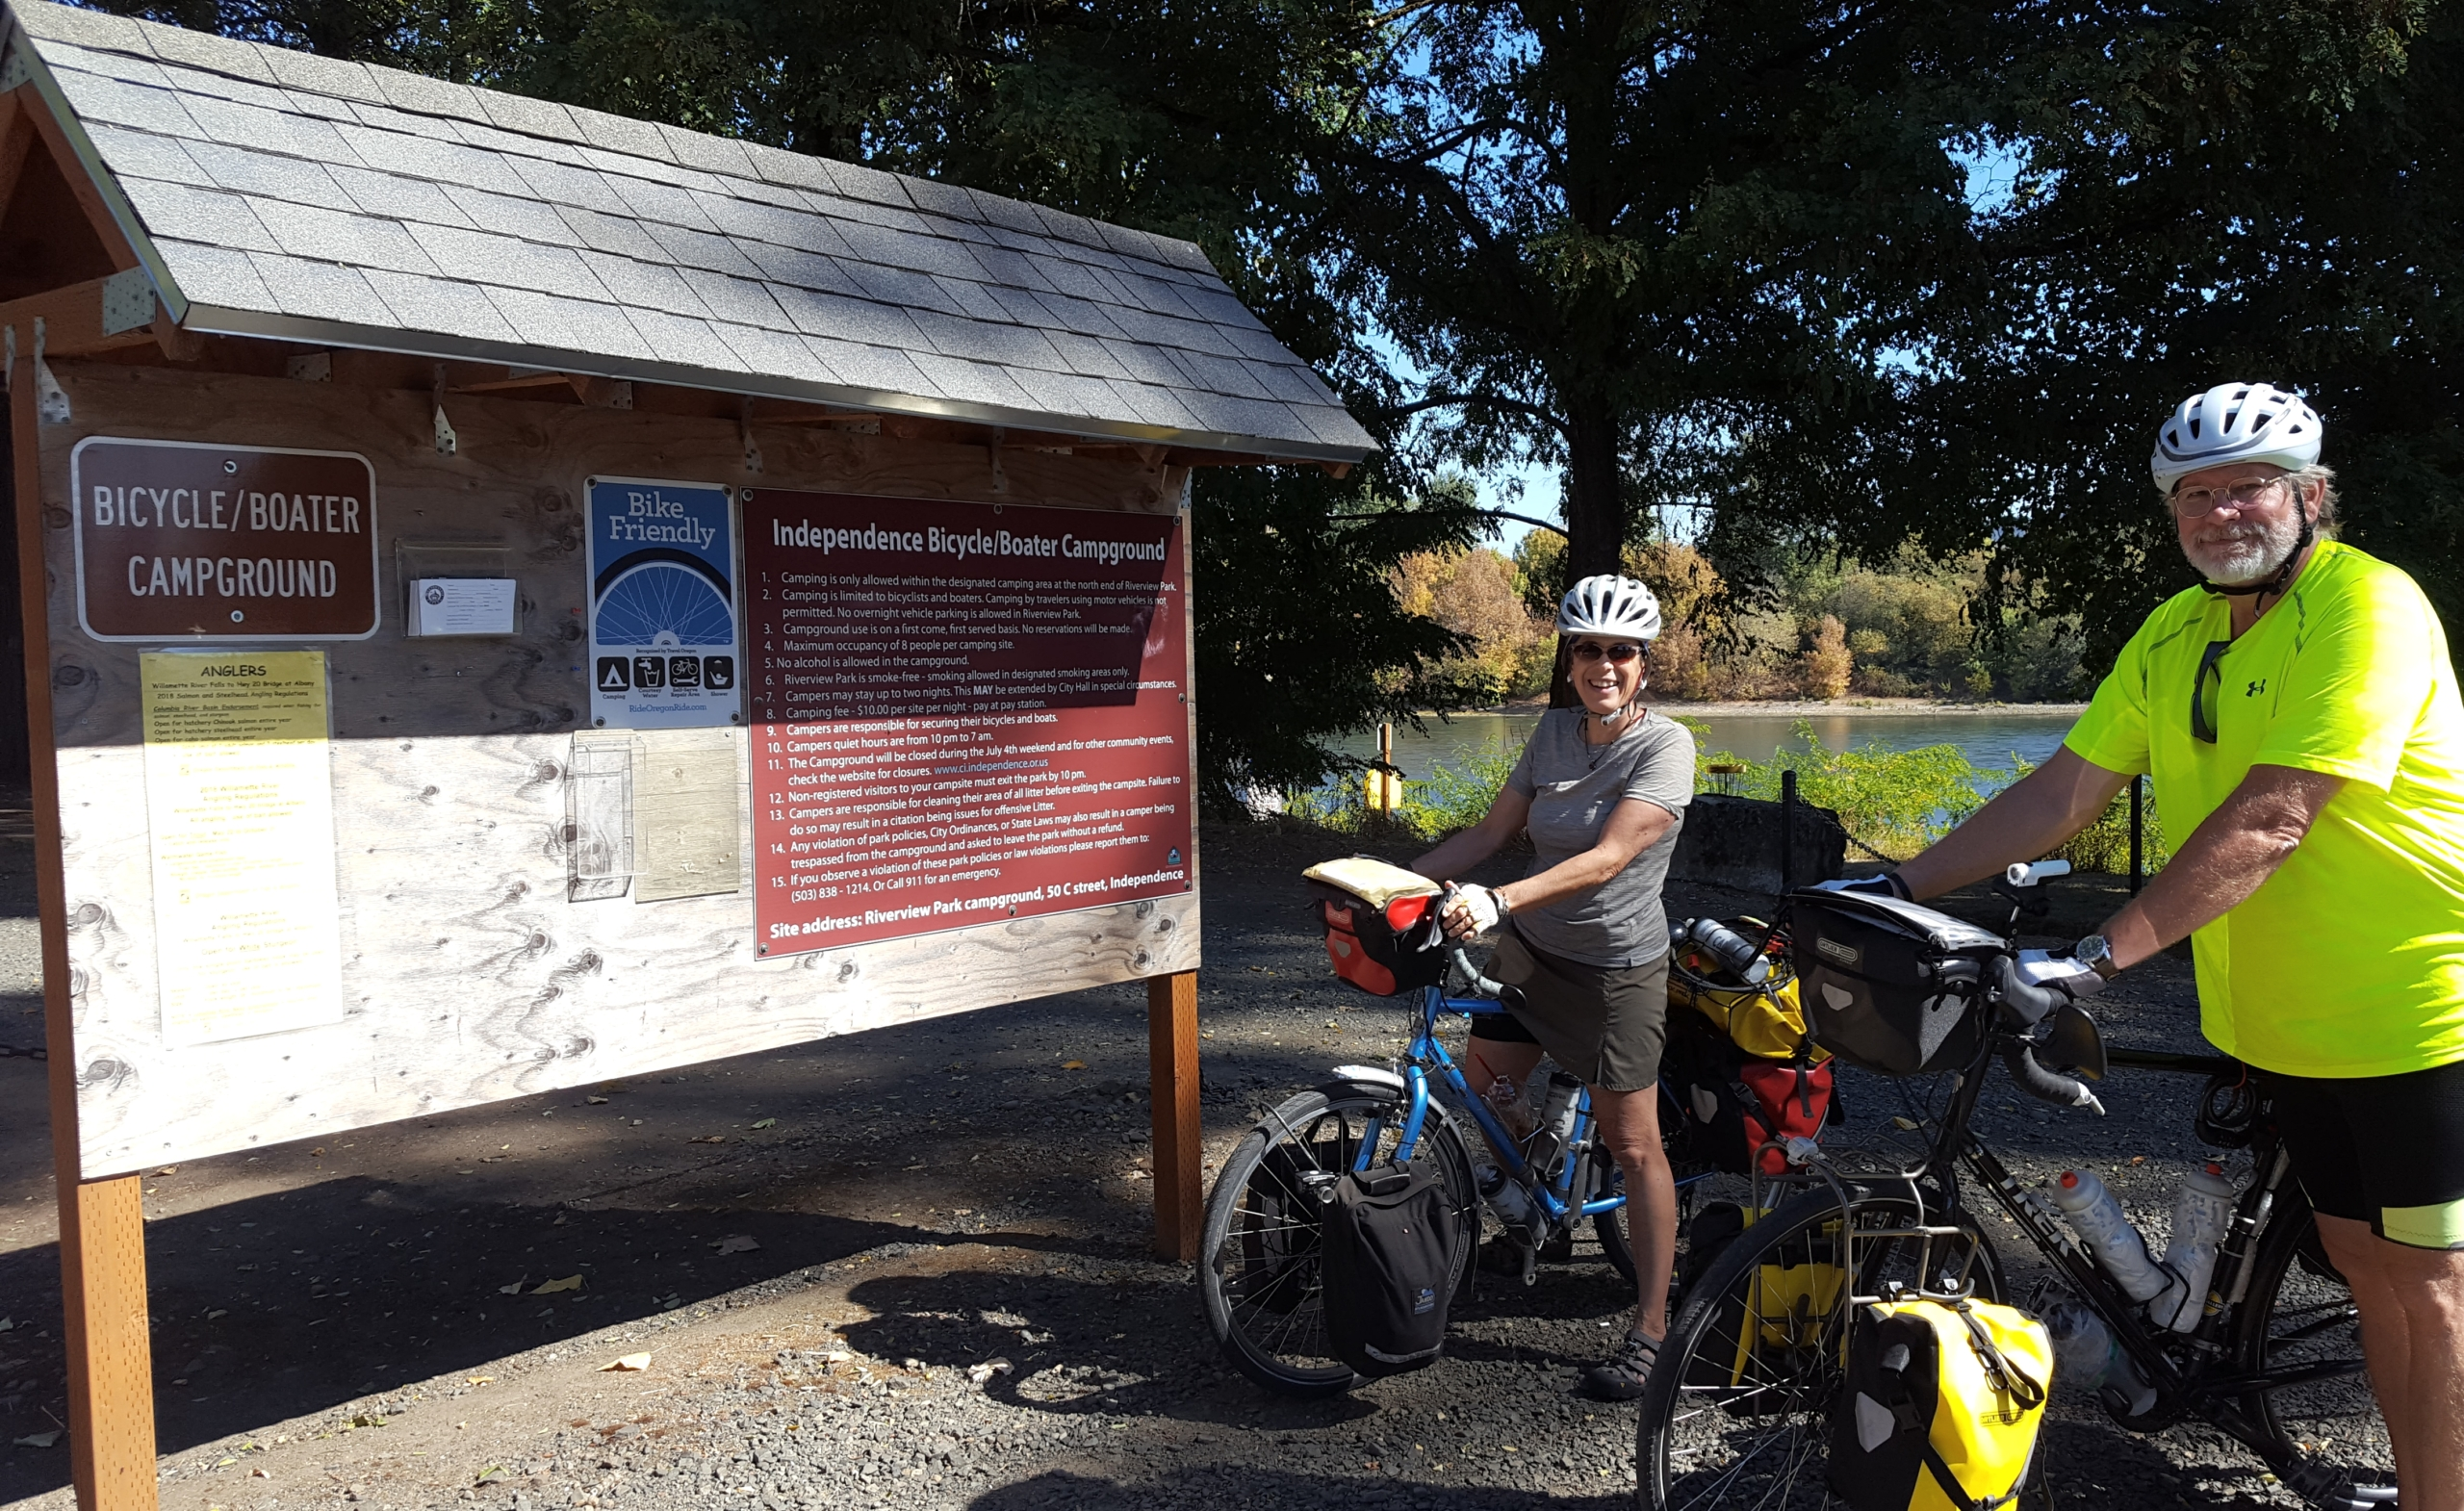 Bikers at the Independence Bicycle Boater Campground